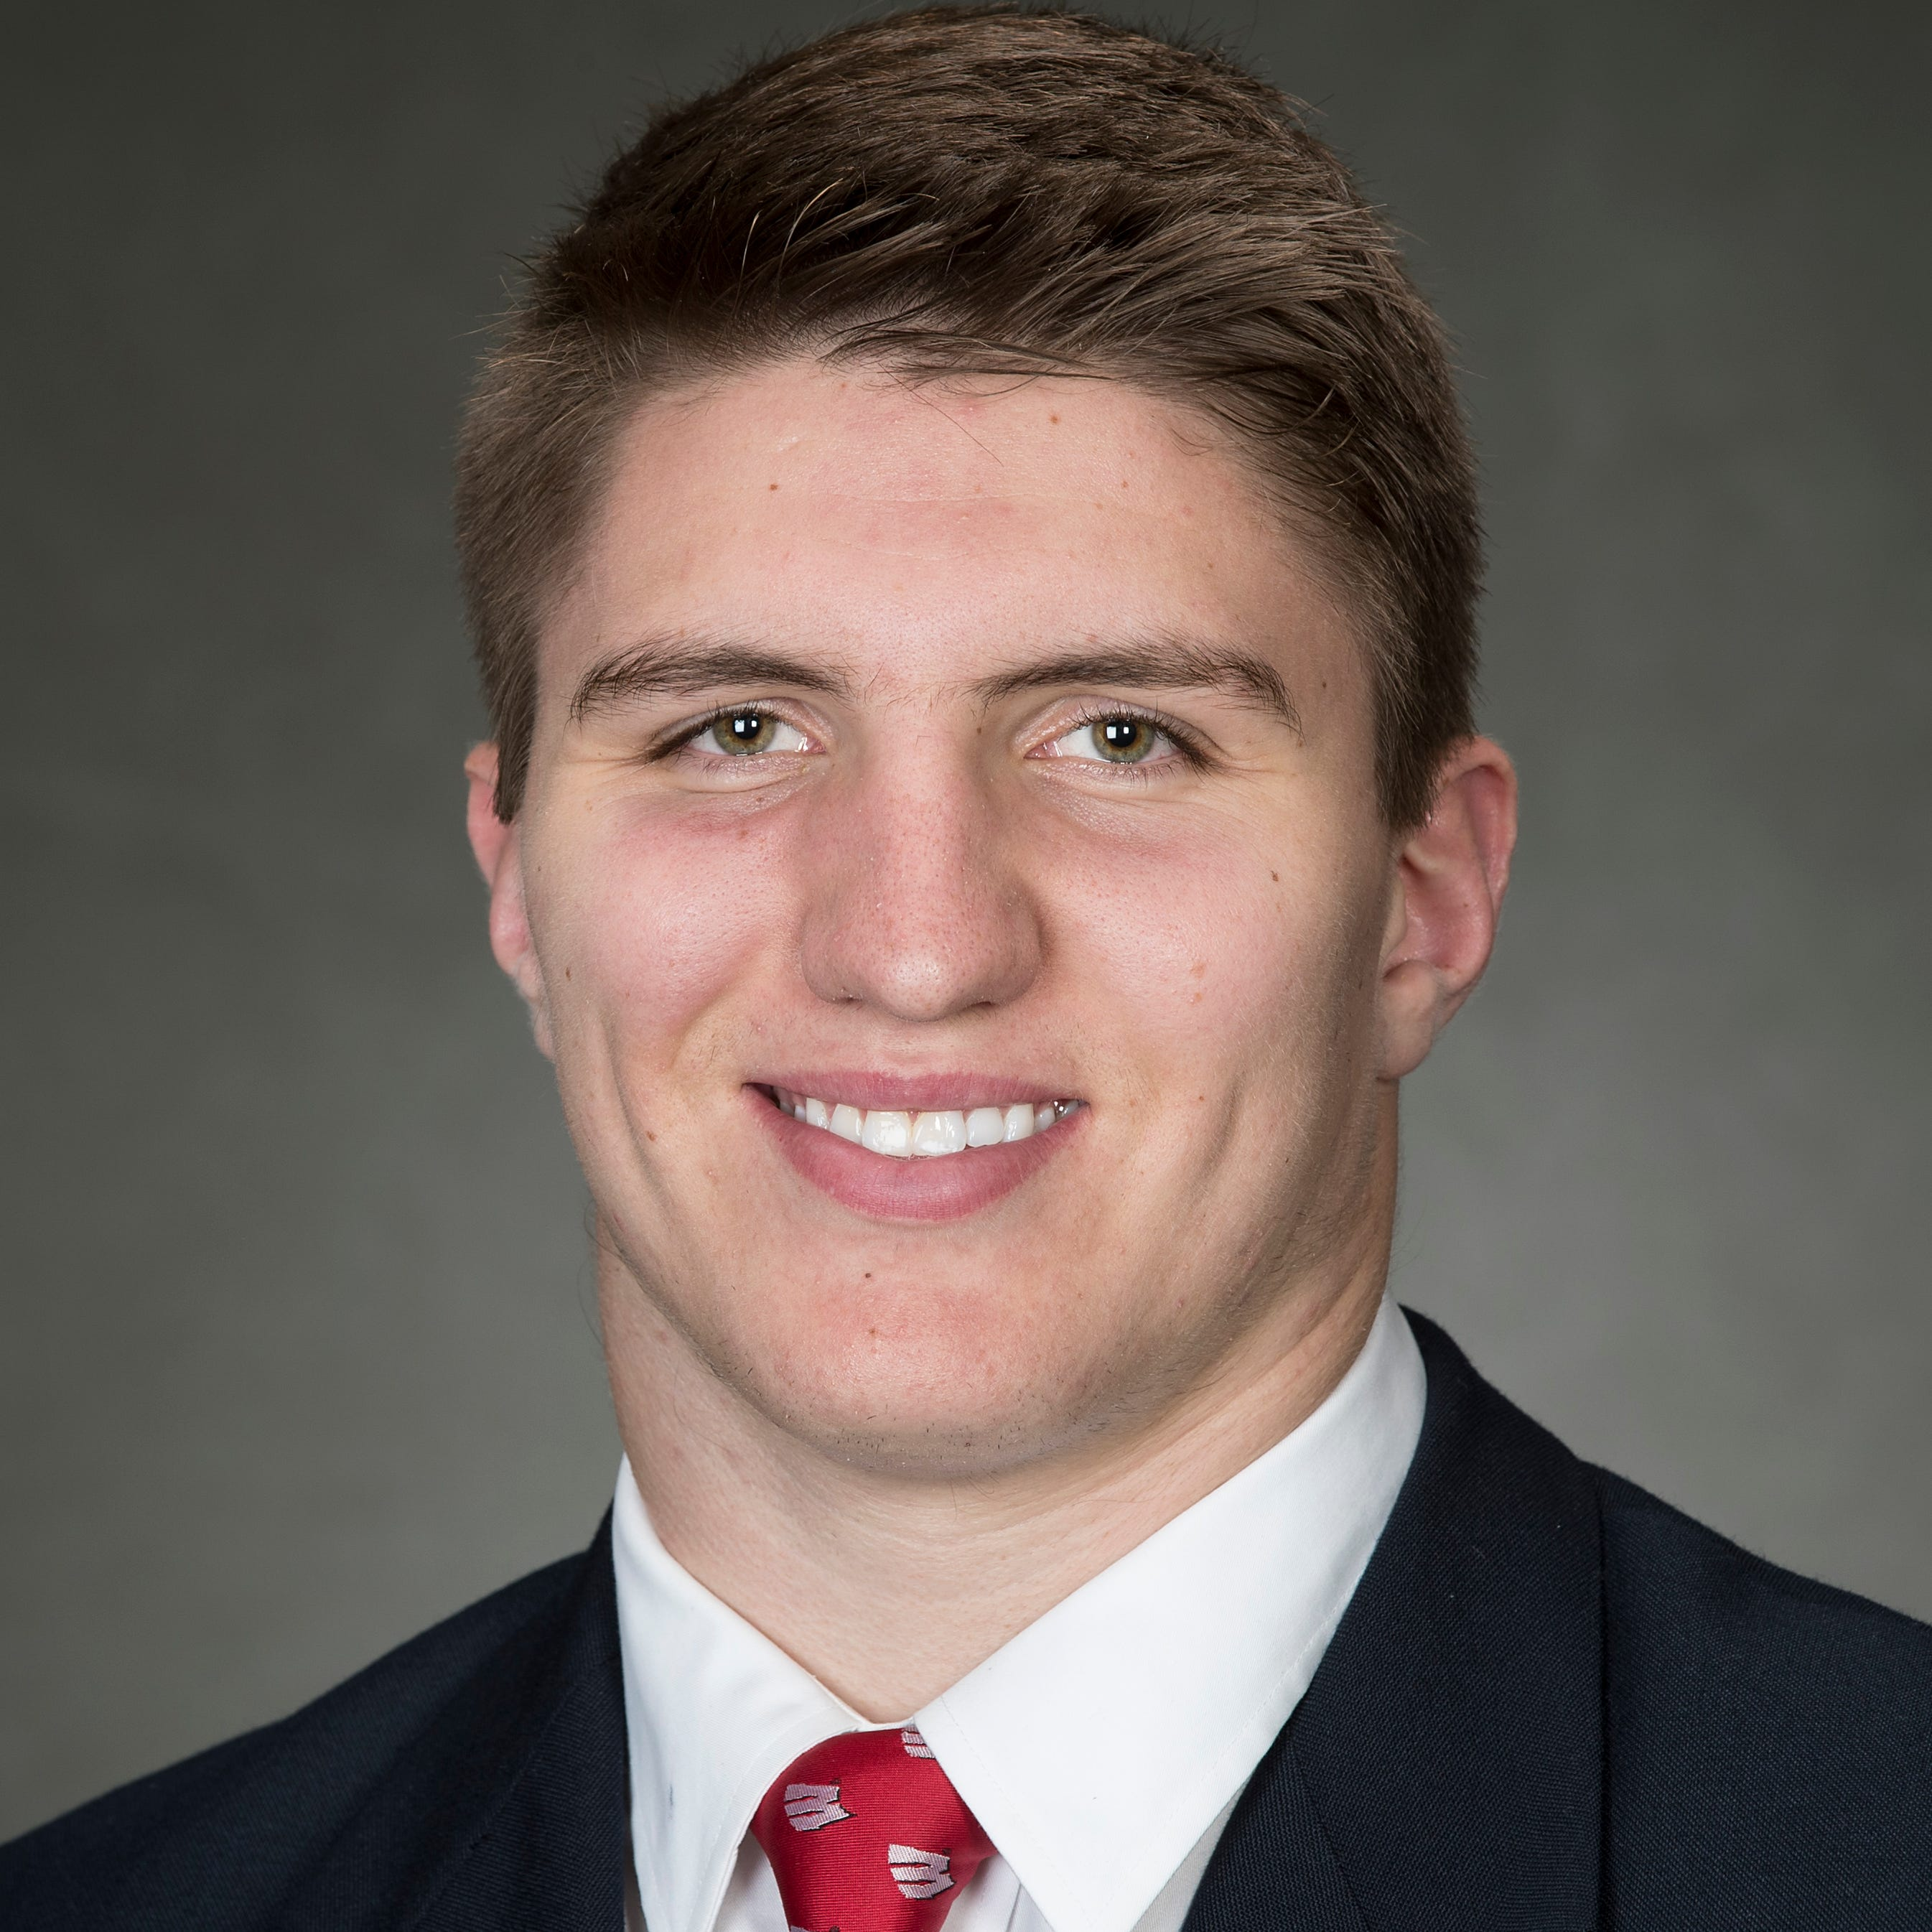 A quick learner, freshman linebacker Jack Sanborn could make his debut Saturday for UW